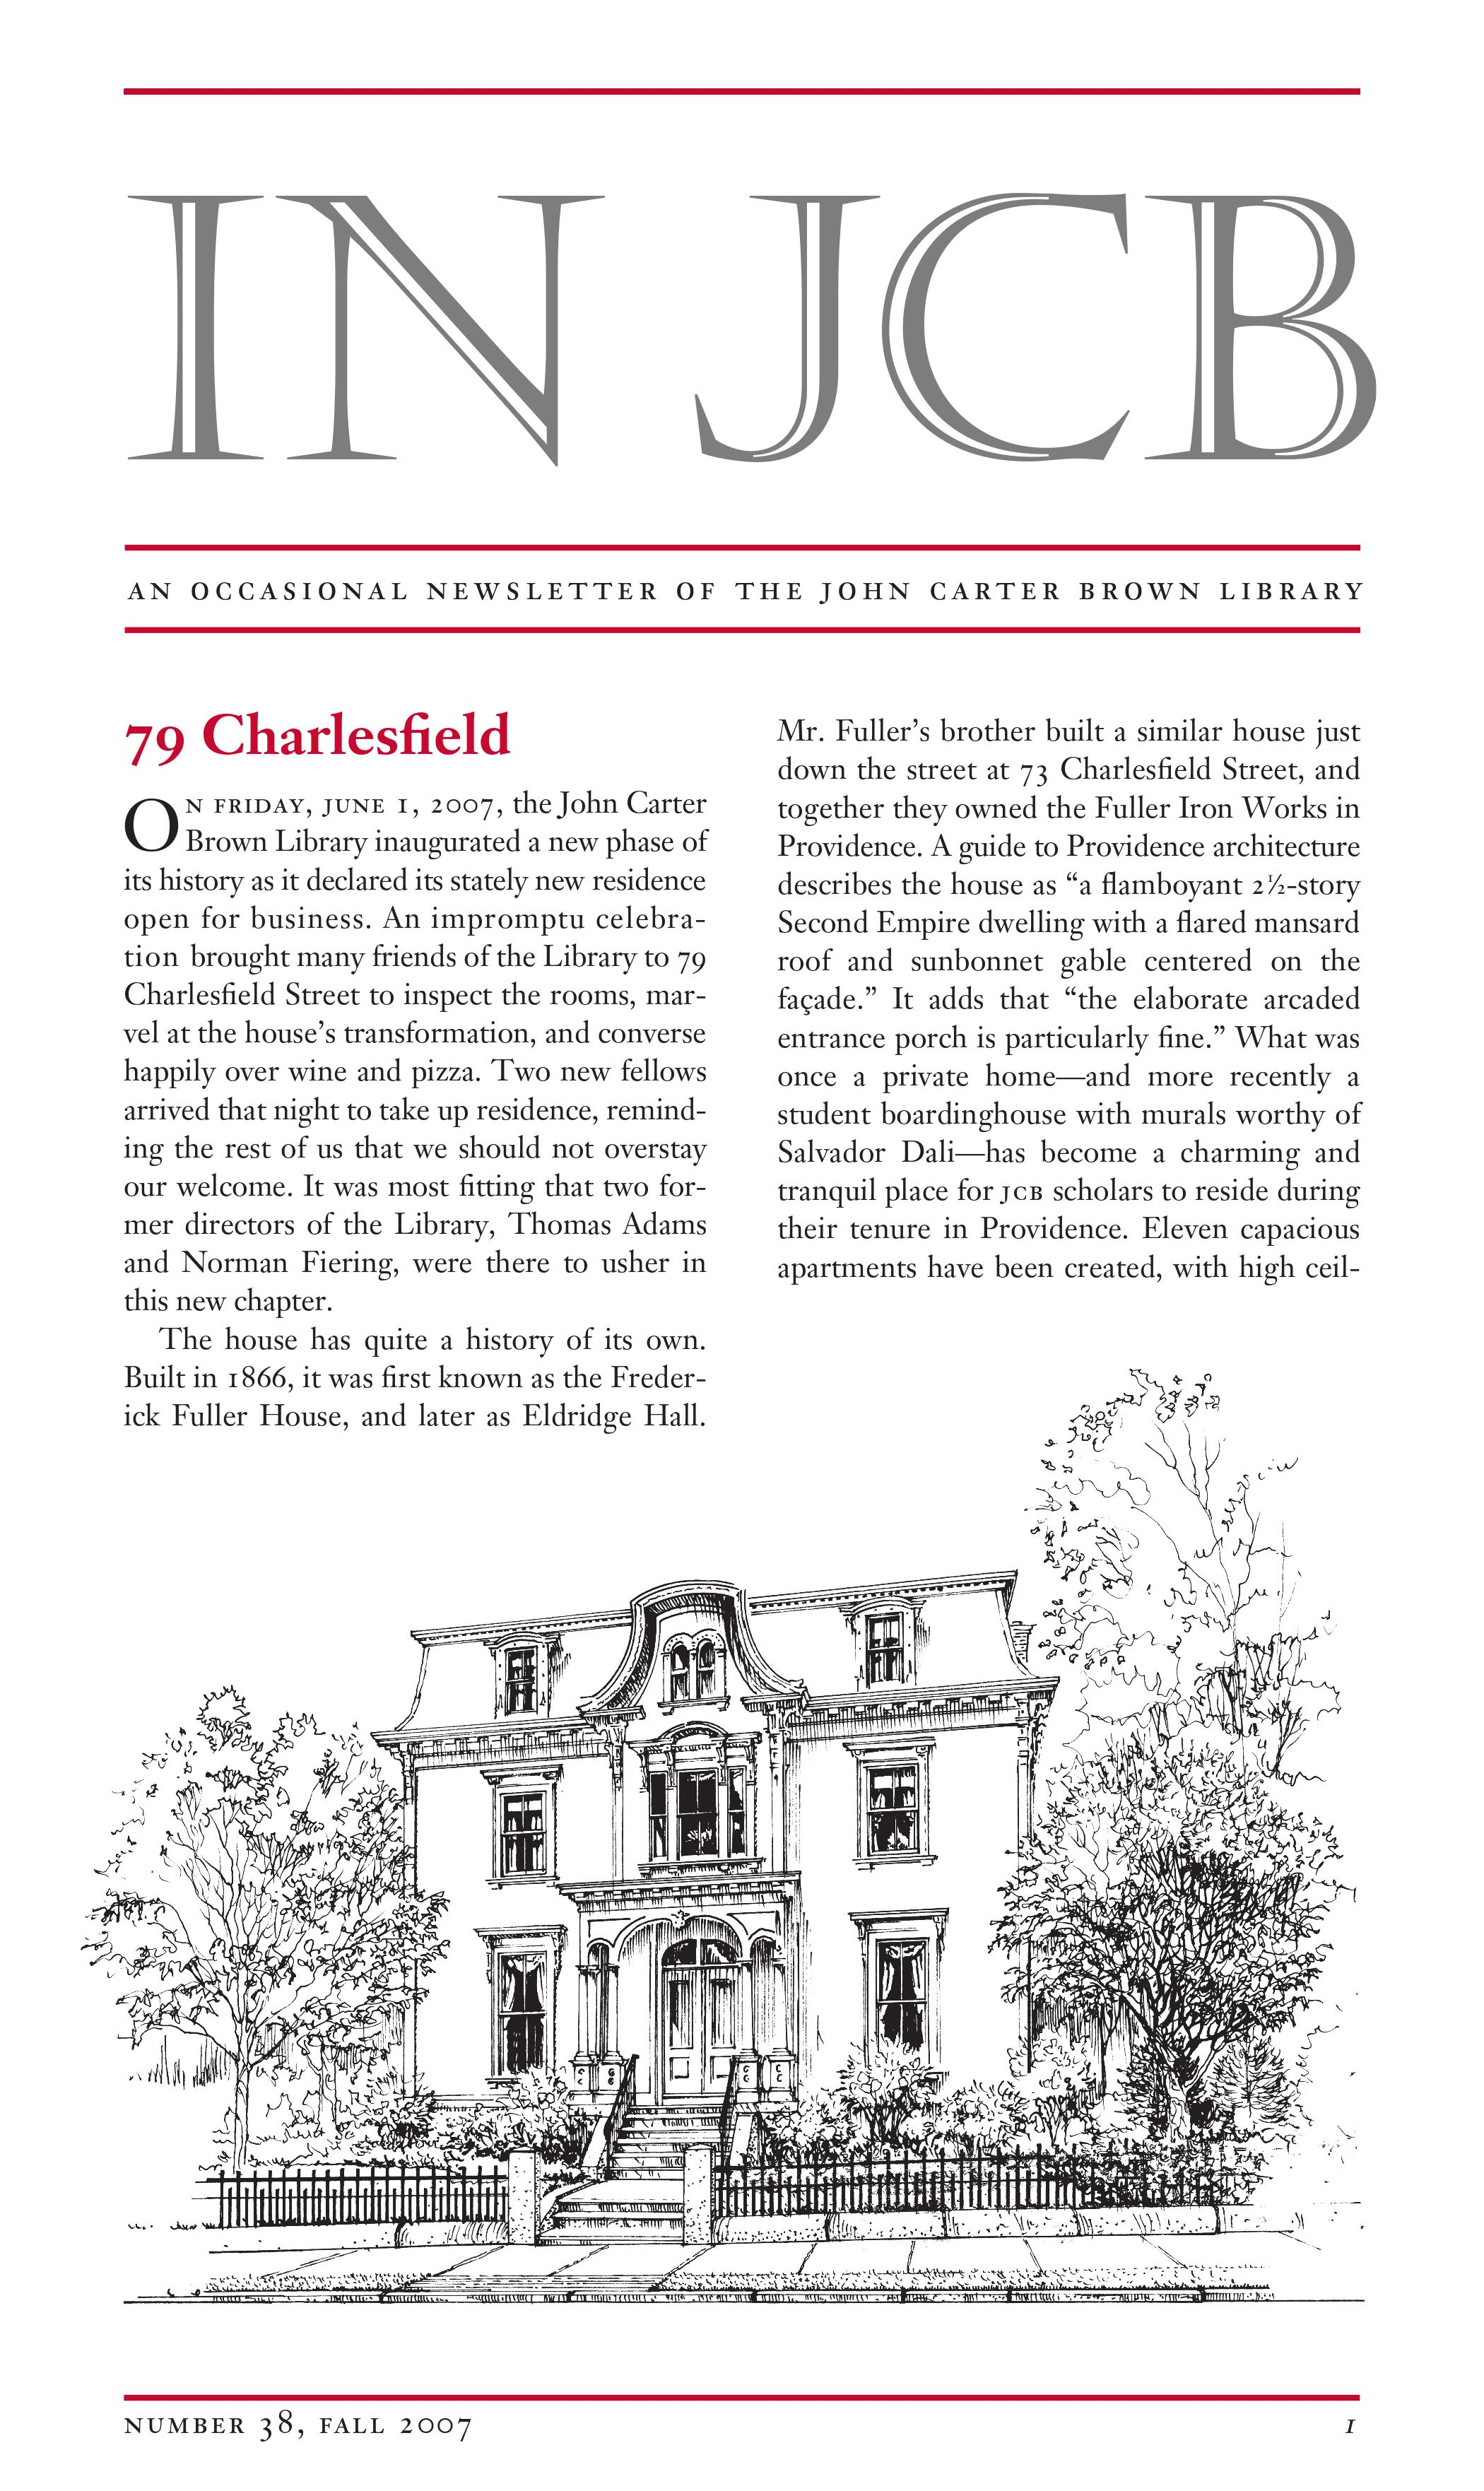 text of a newsletter and a sketch of a Victorian house surrounded by trees